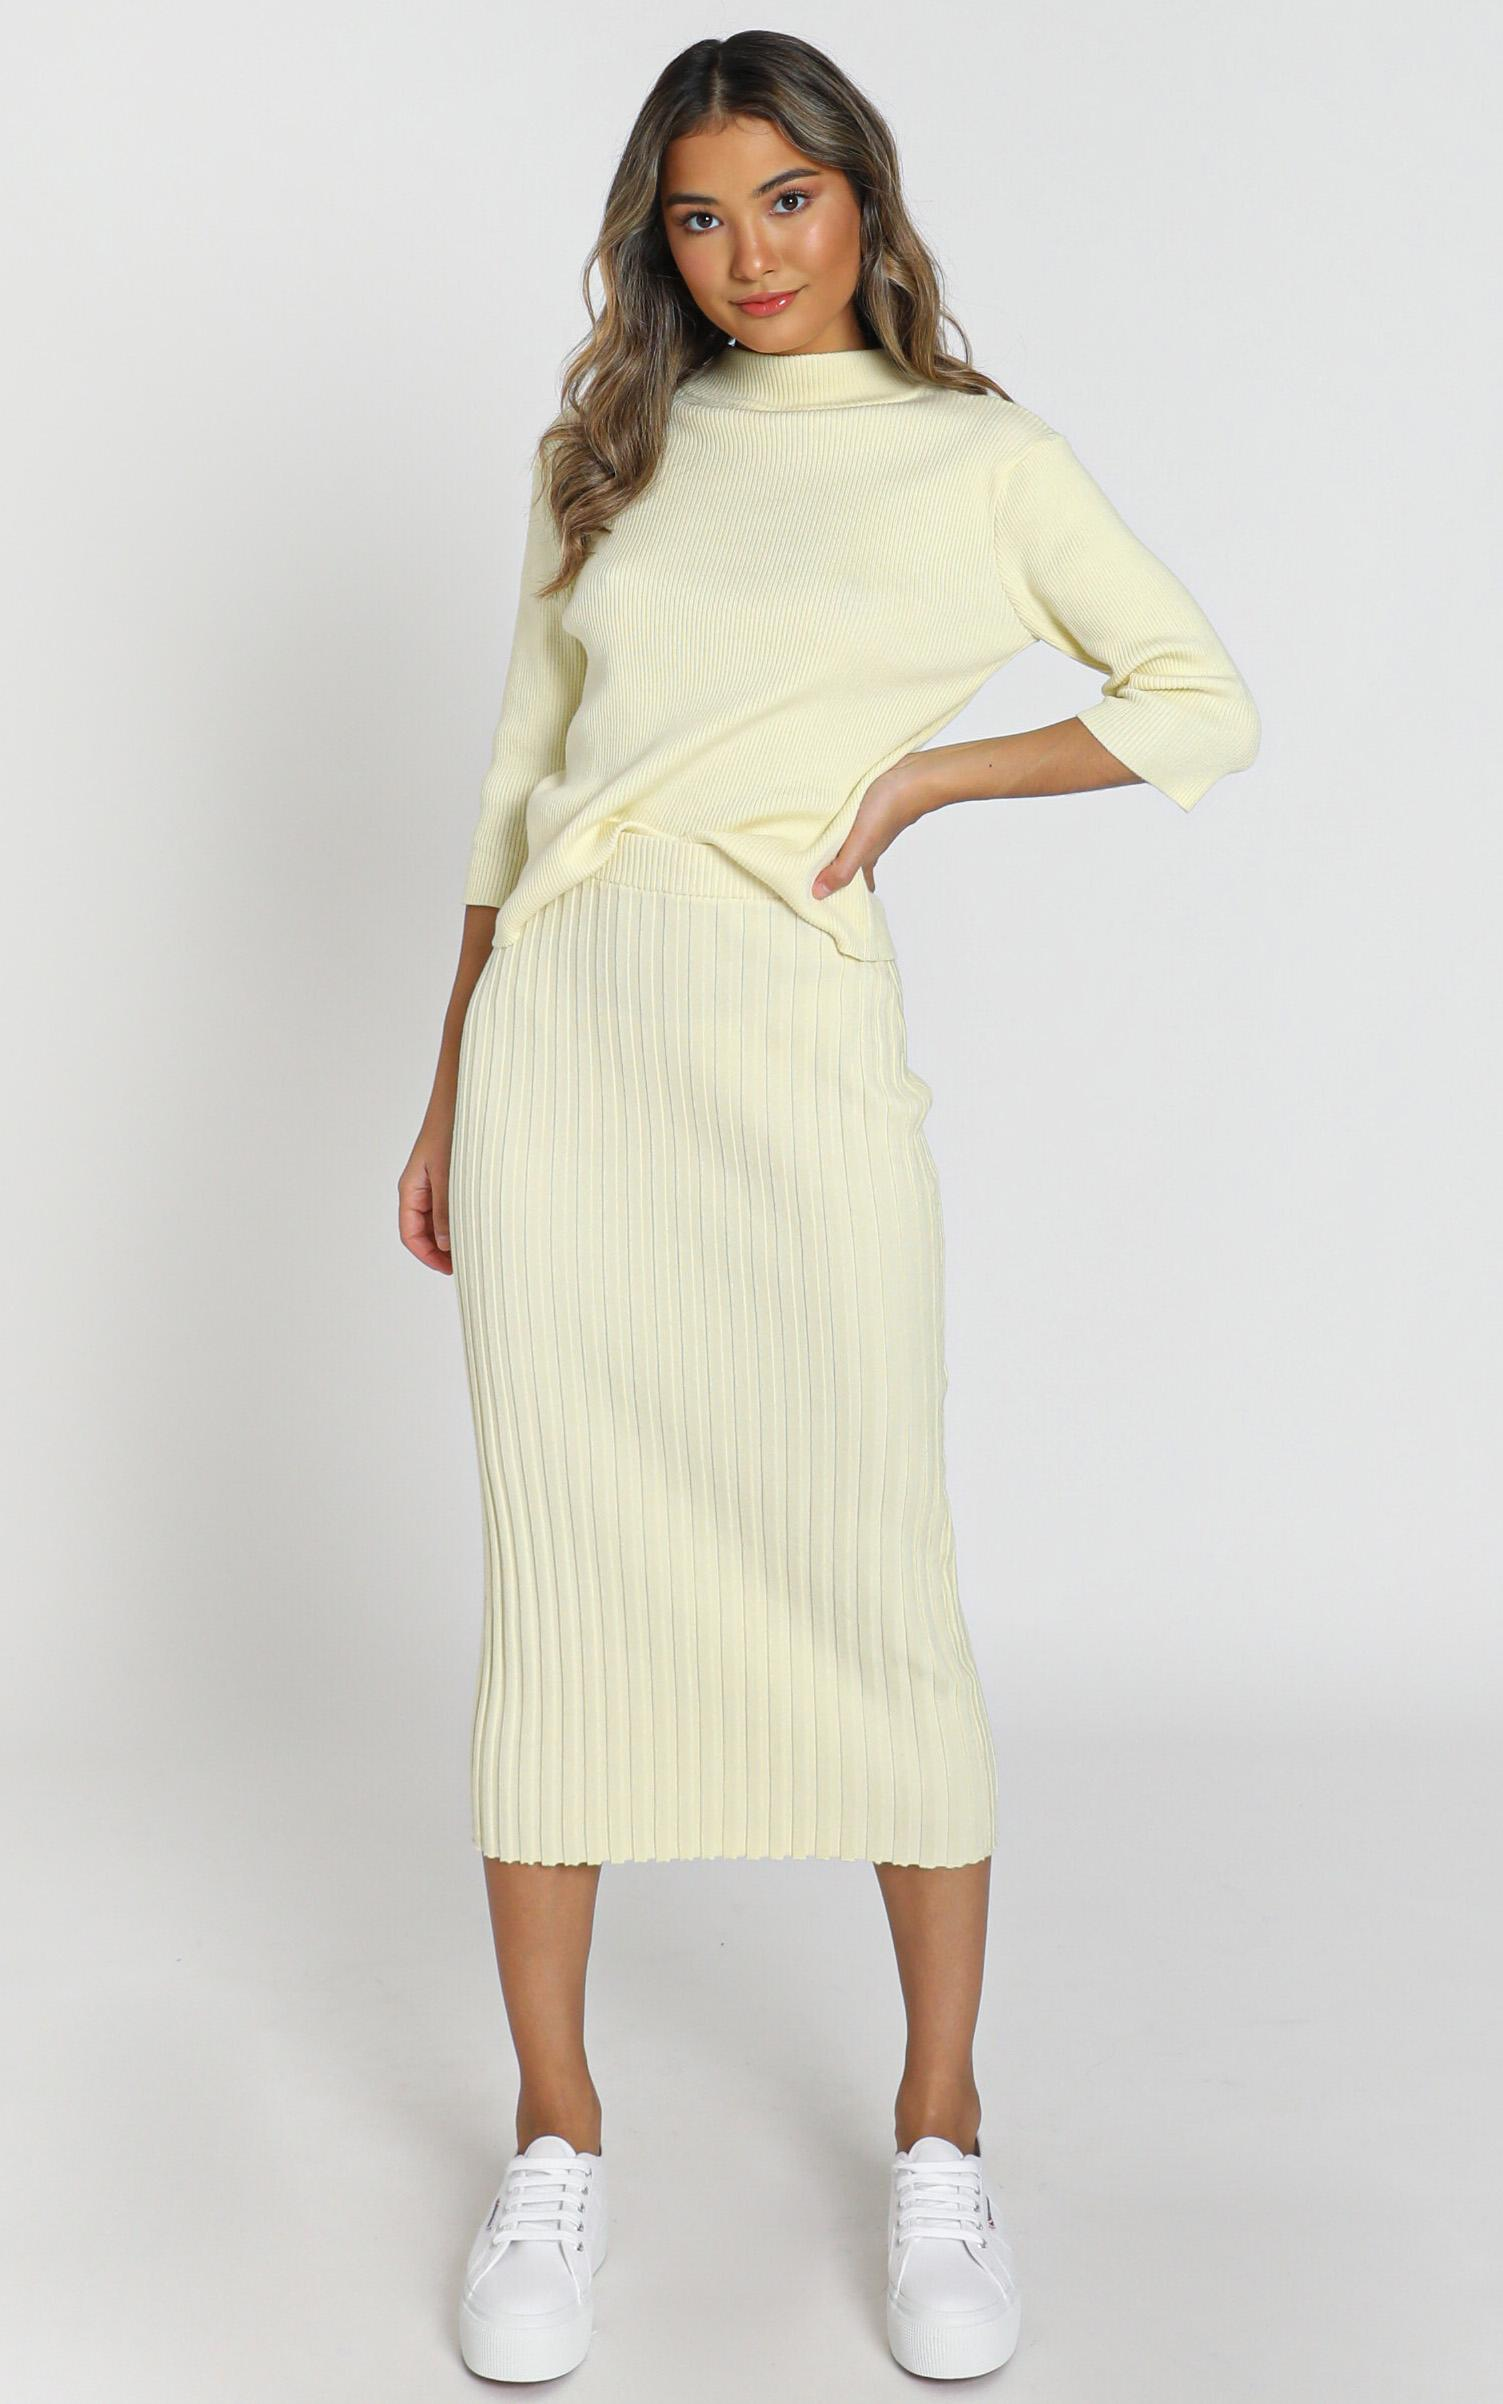 Cicely Knitted Skirt in pastel yellow - S, Yellow, hi-res image number null